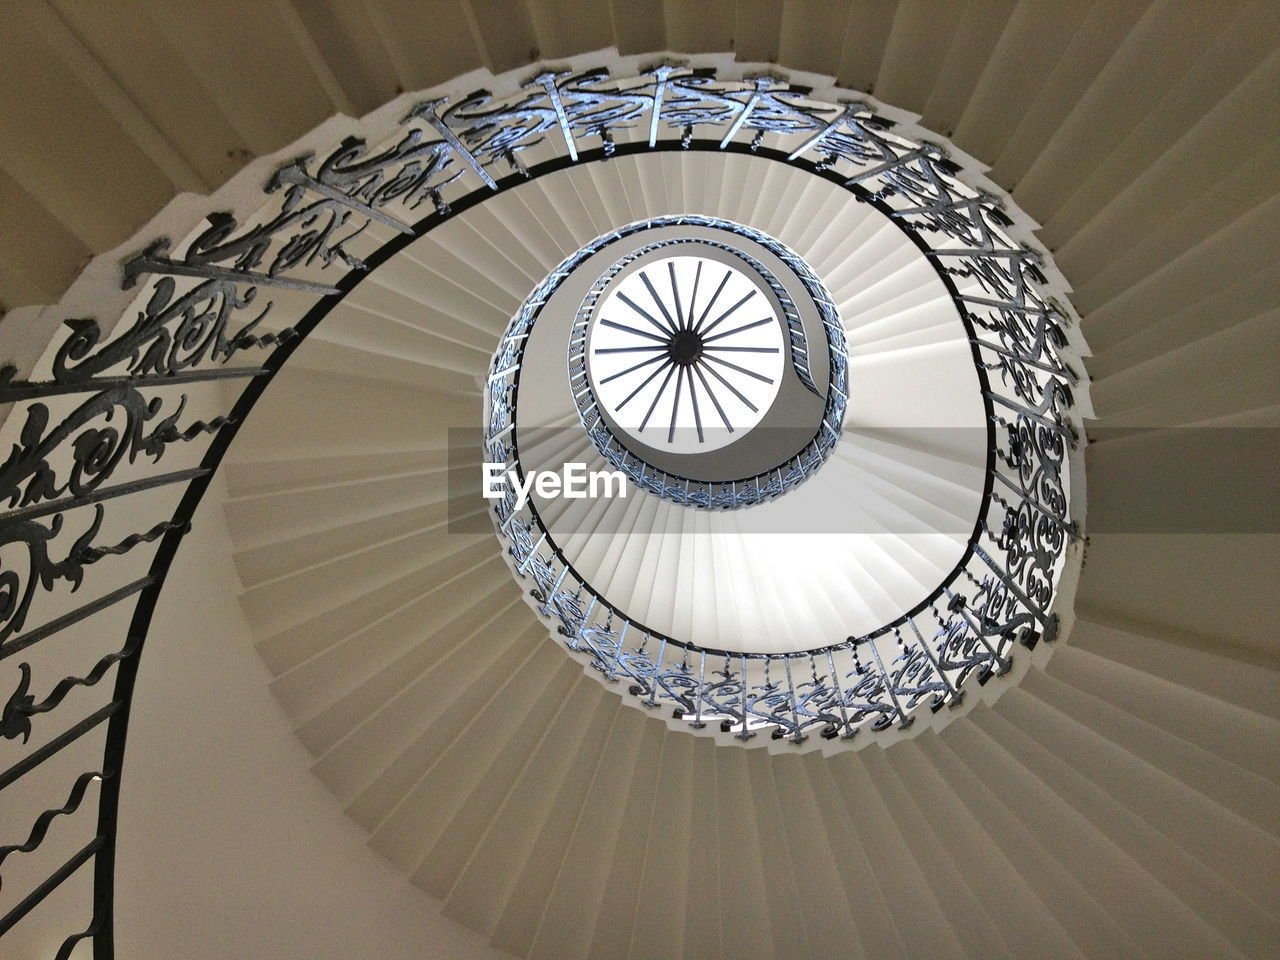 architecture, built structure, steps and staircases, staircase, railing, spiral, spiral staircase, indoors, pattern, low angle view, no people, design, directly below, day, geometric shape, shape, building, ceiling, circle, skylight, cupola, ornate